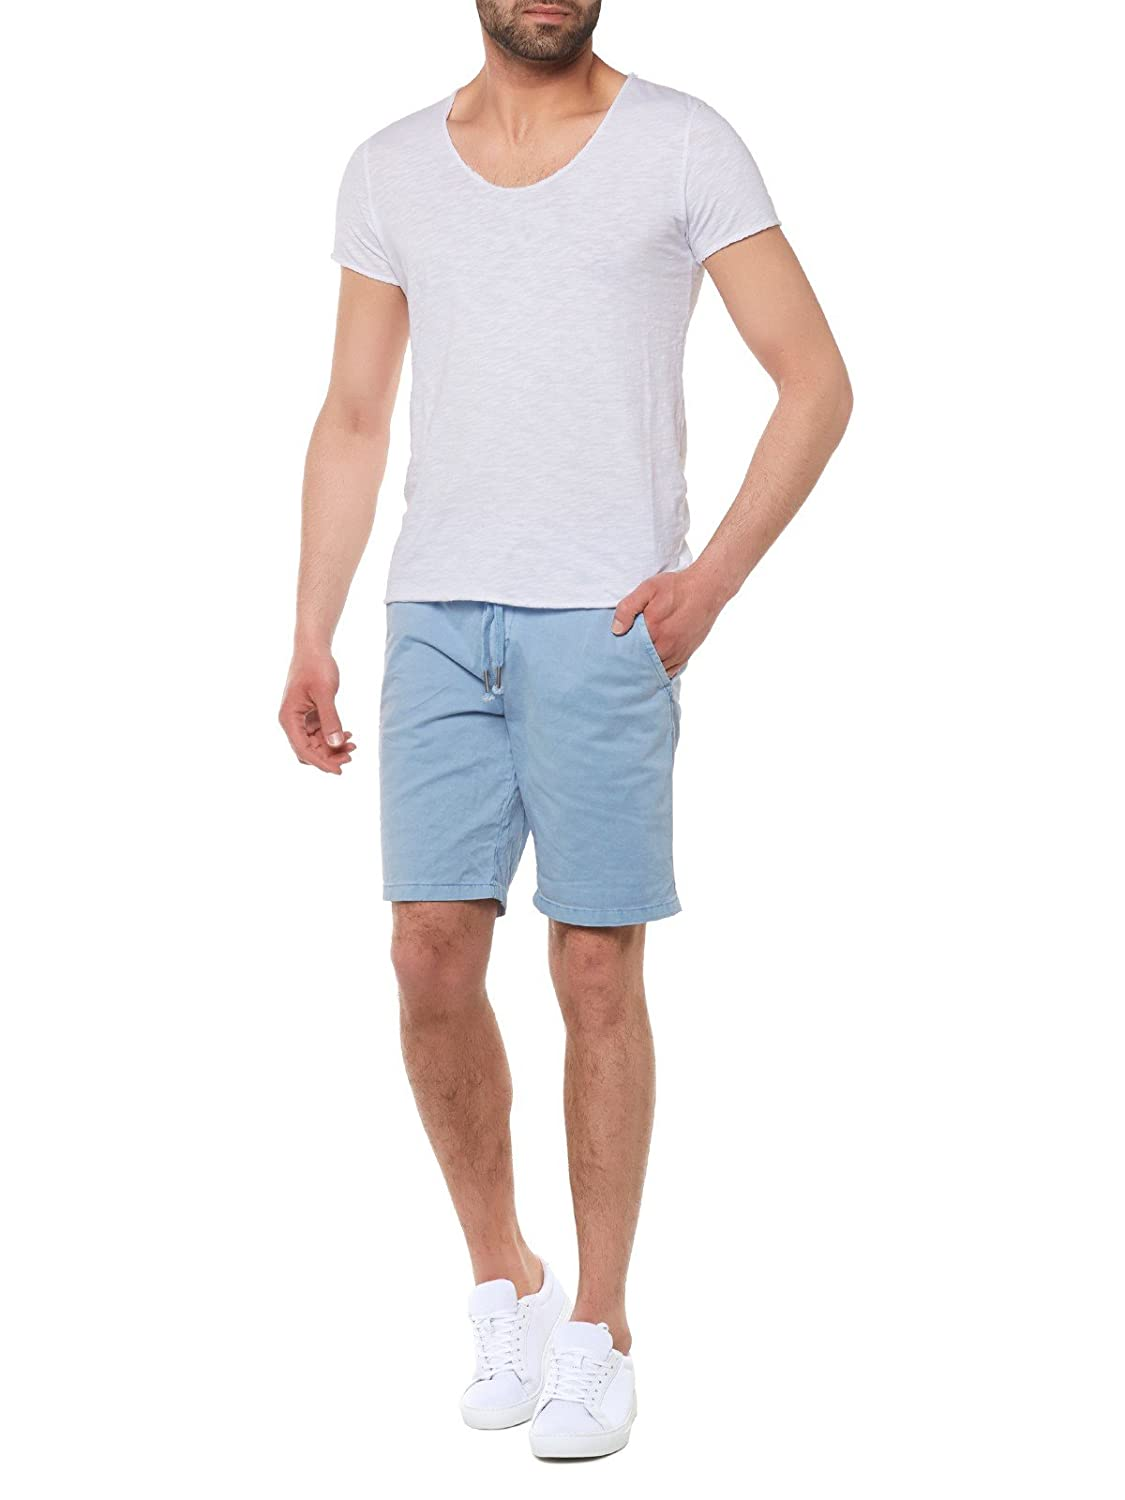 87ebb8a634 Superdry Mens International Sunscorched Beach Shorts in Skyline XXL:  Amazon.co.uk: Clothing